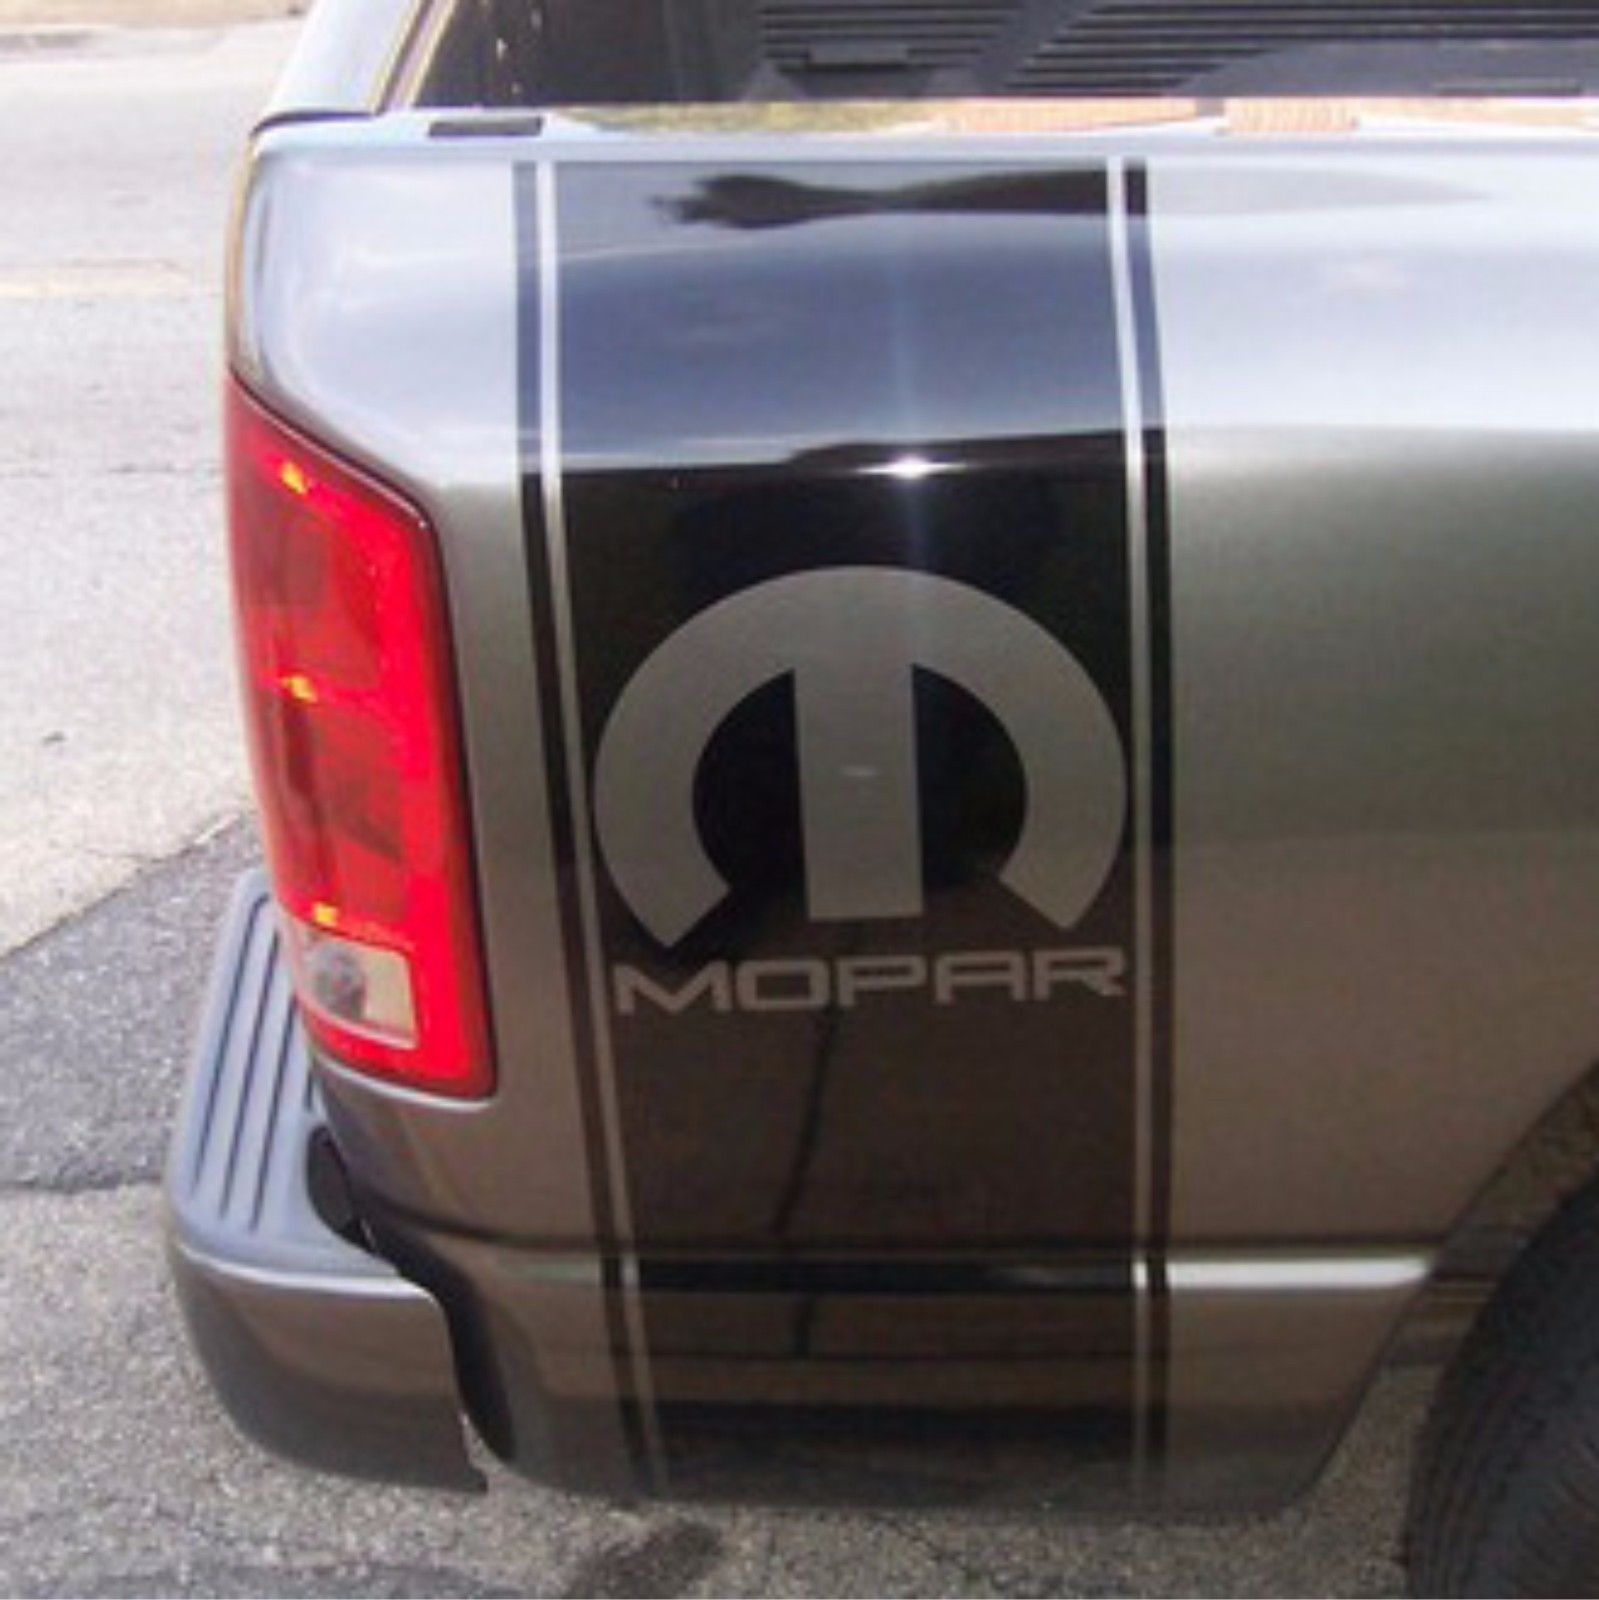 Dodge Ram 1500 5.7 L Hemi Performance Vinyl sticker tailgate decal stripe mopar